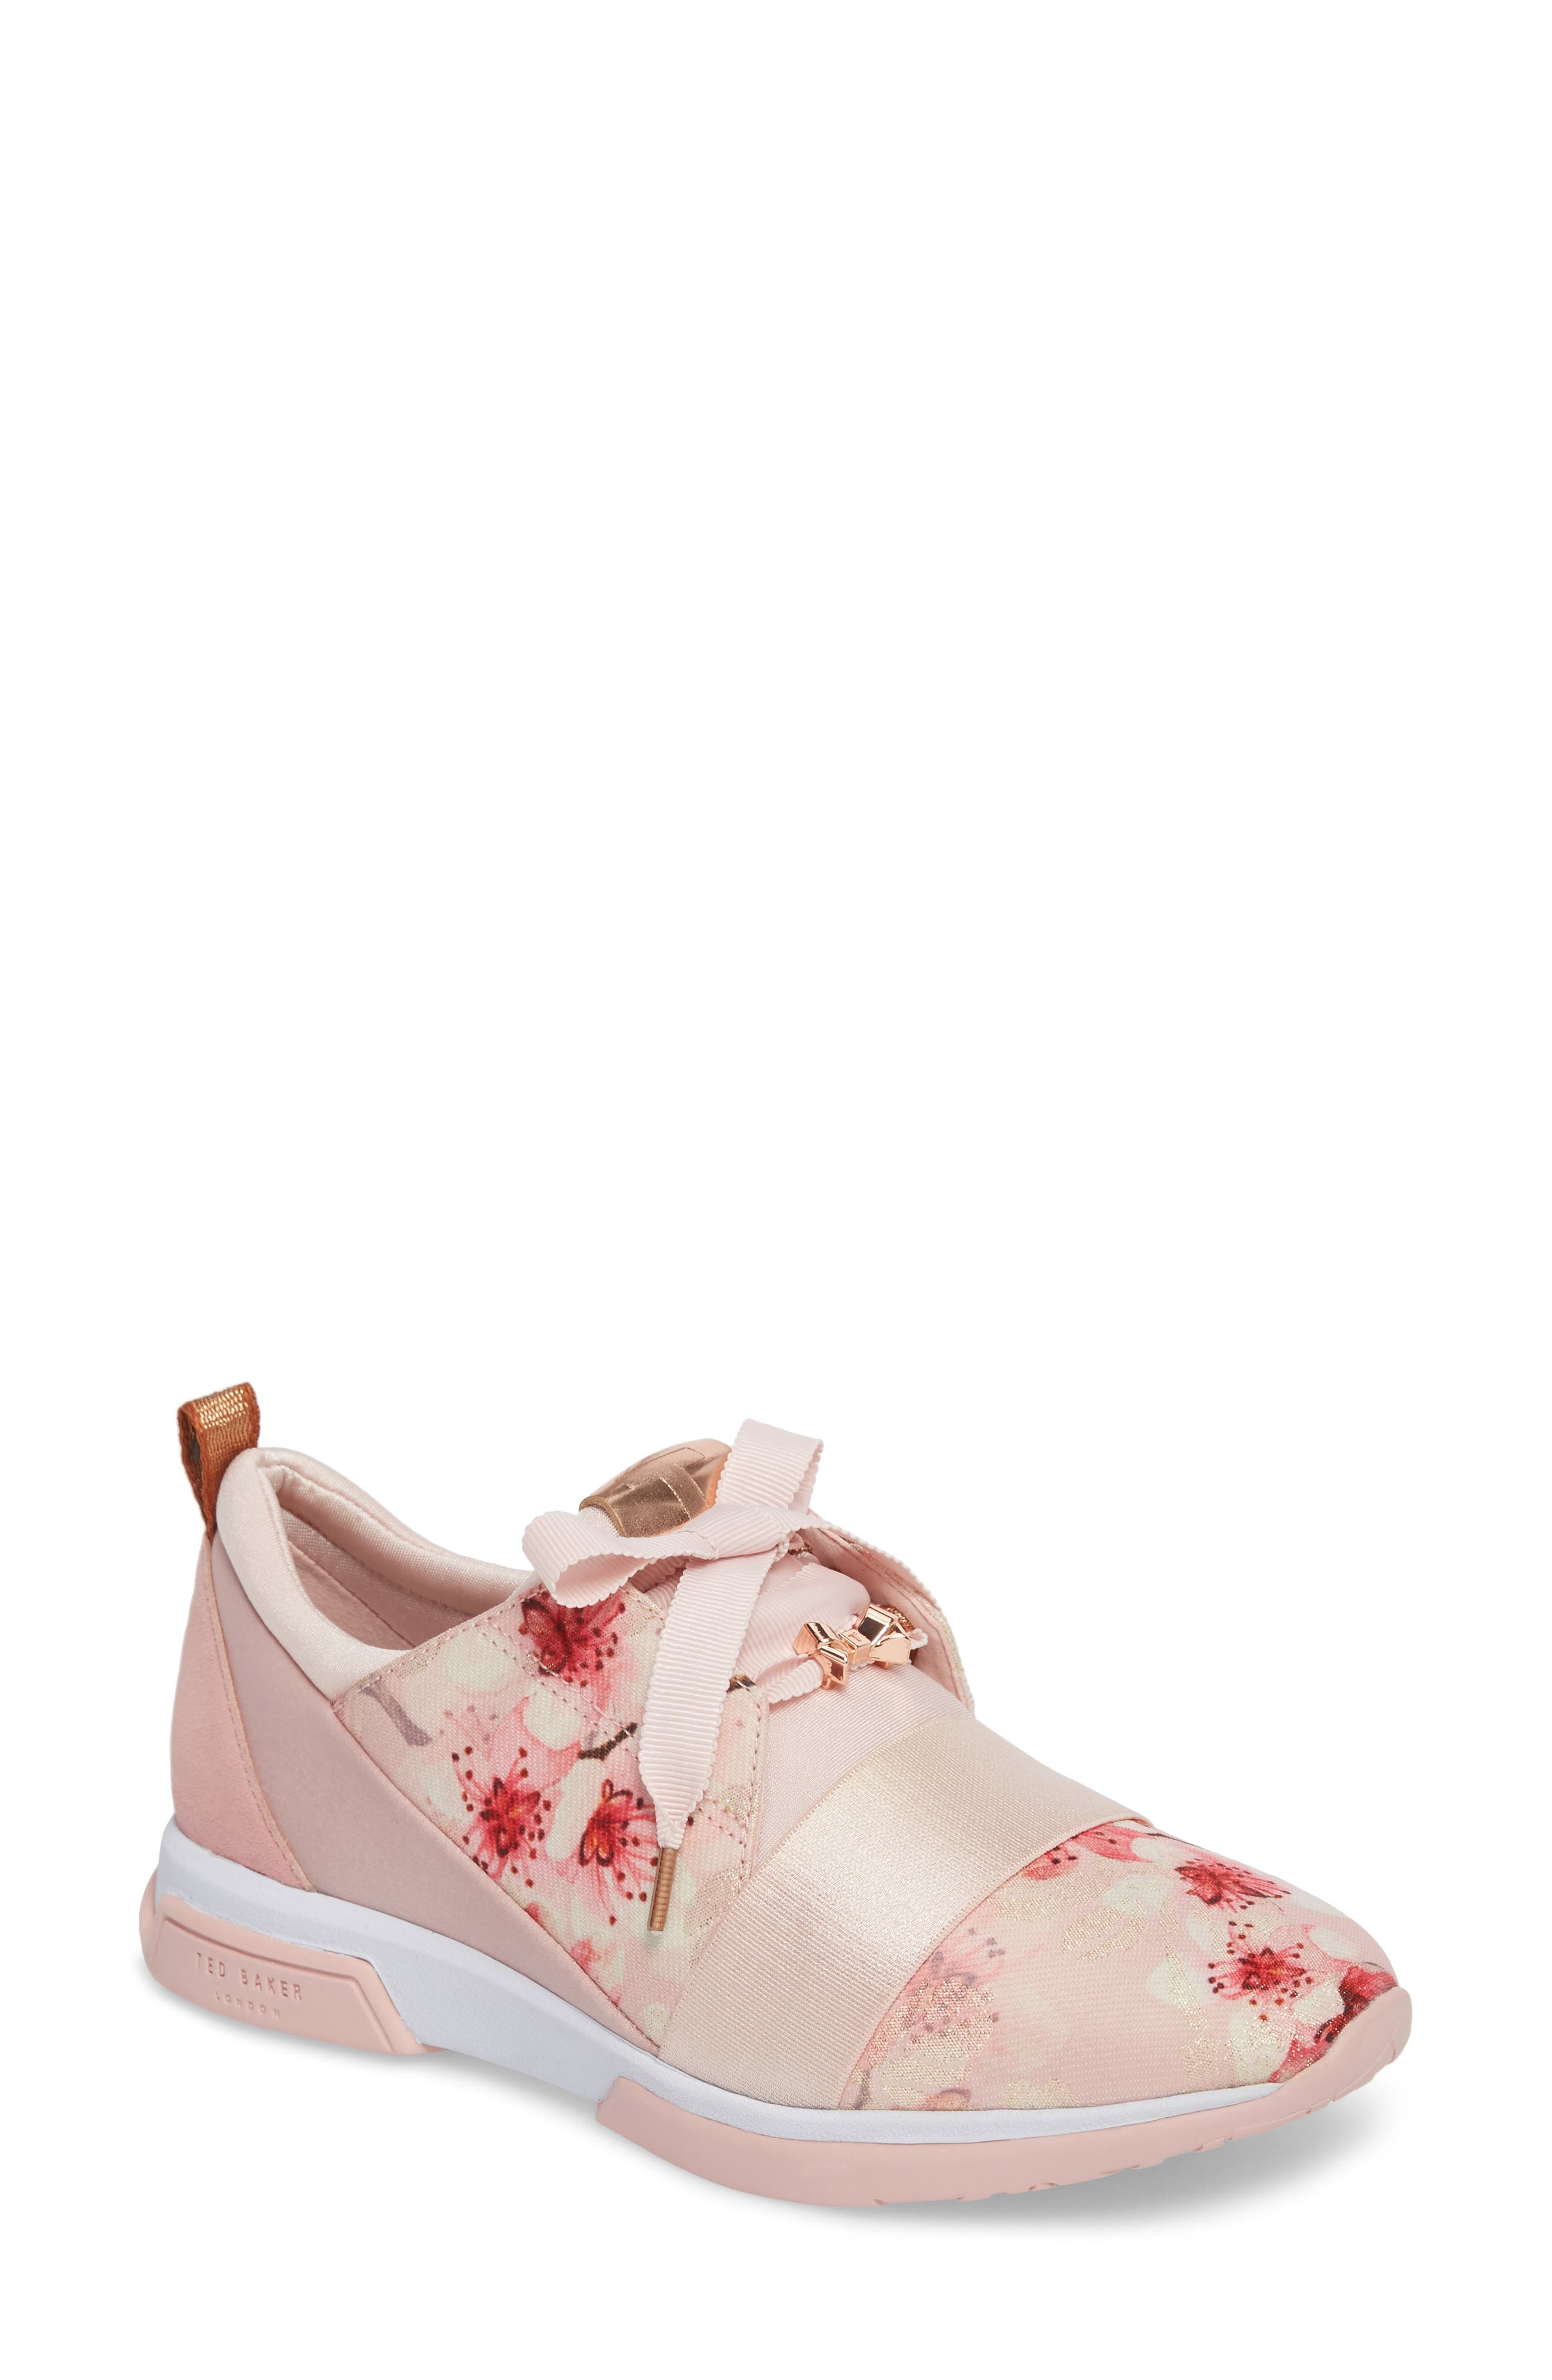 Main Image - Ted Baker London Cepap Sneaker (Women)